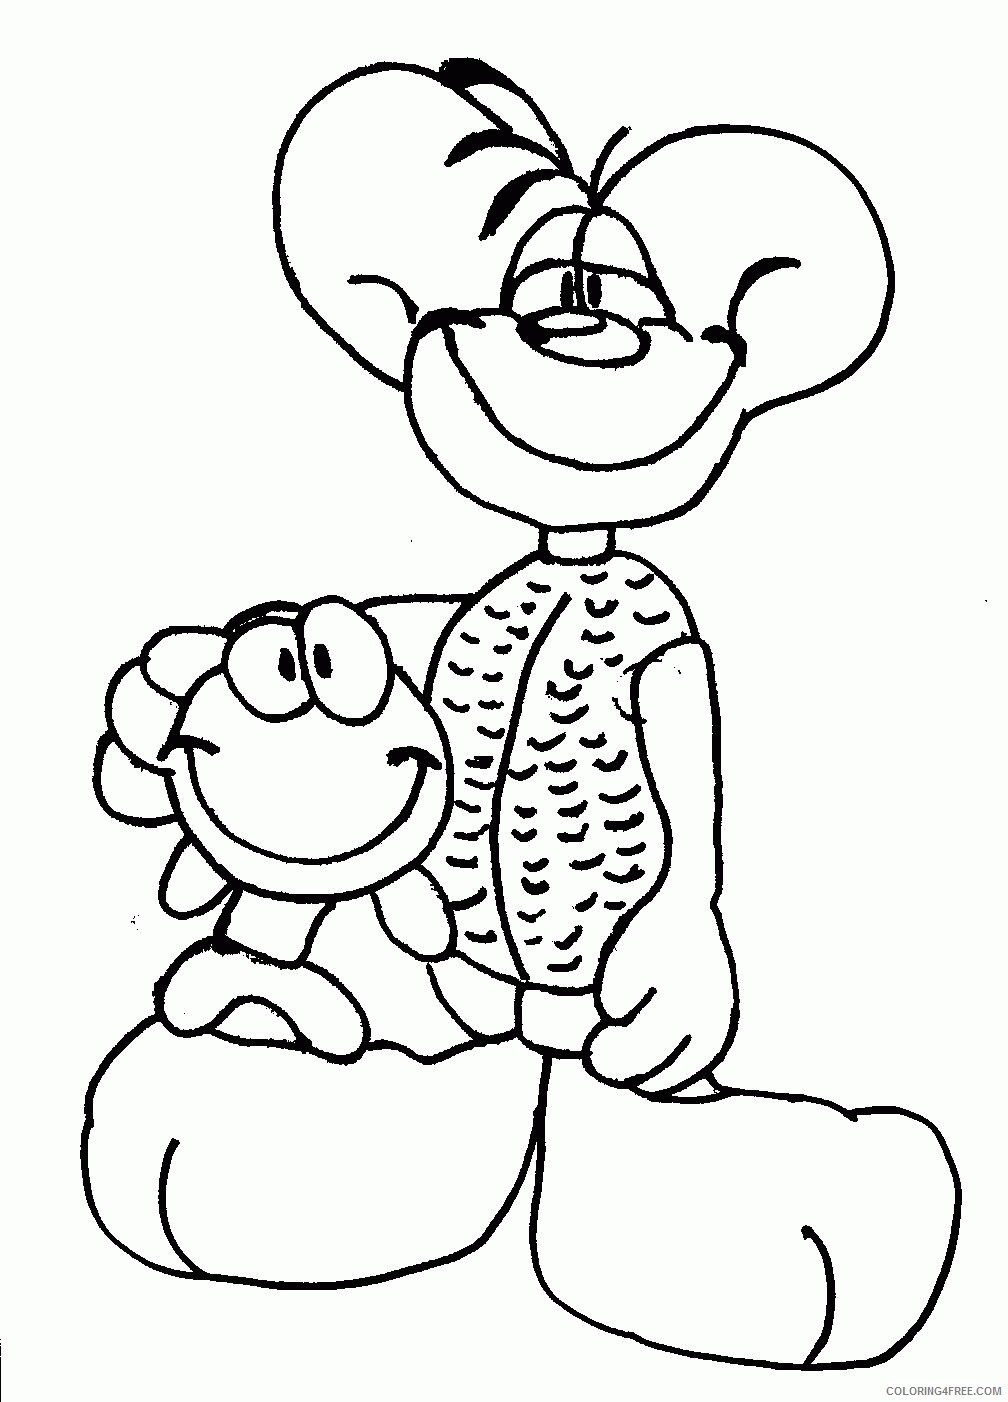 Diddl Coloring Pages Printable Coloring4free